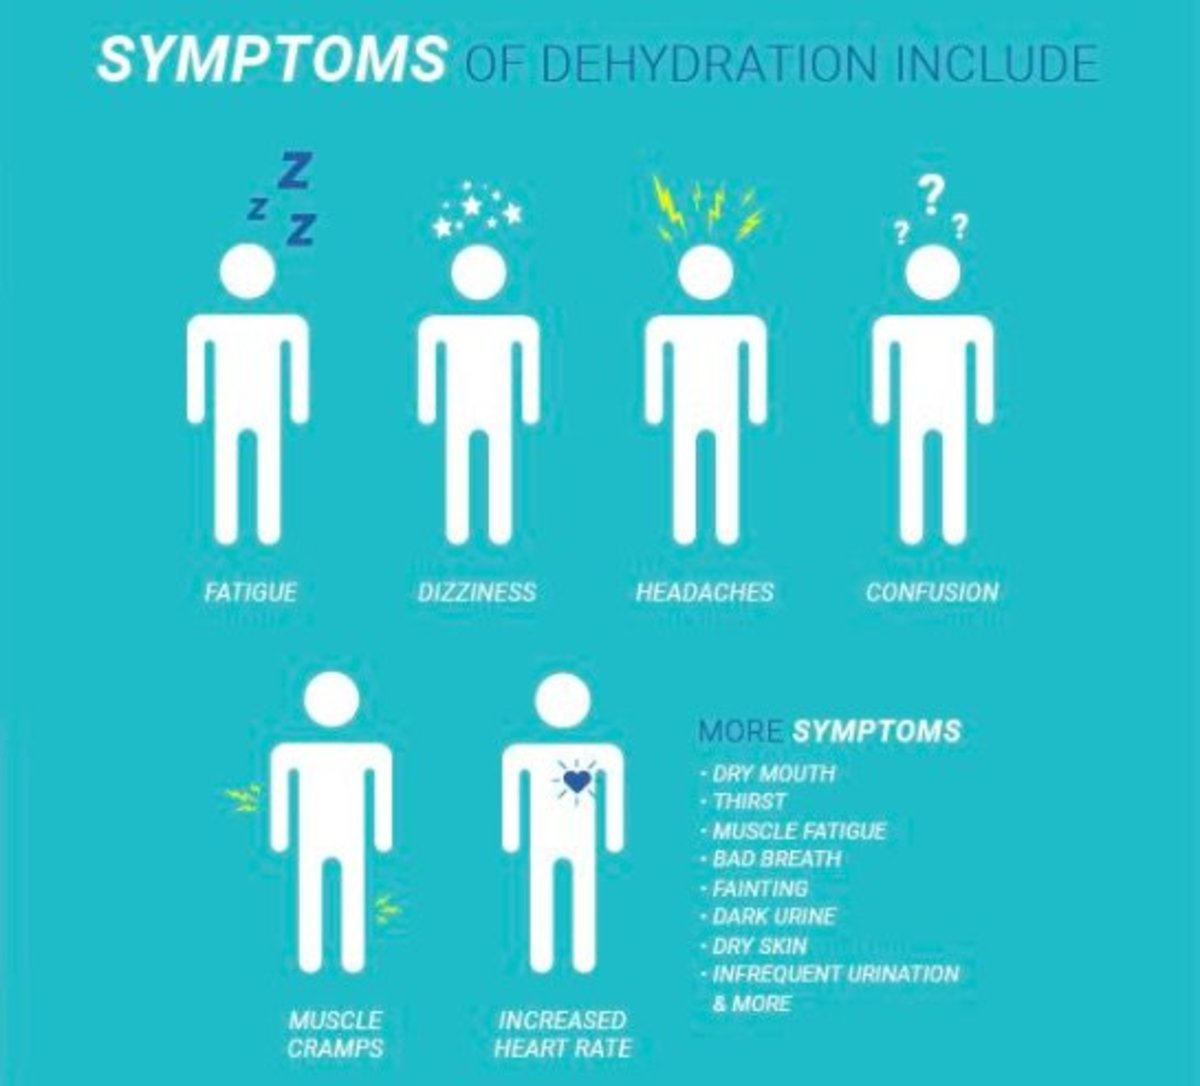 dehydration symptoms